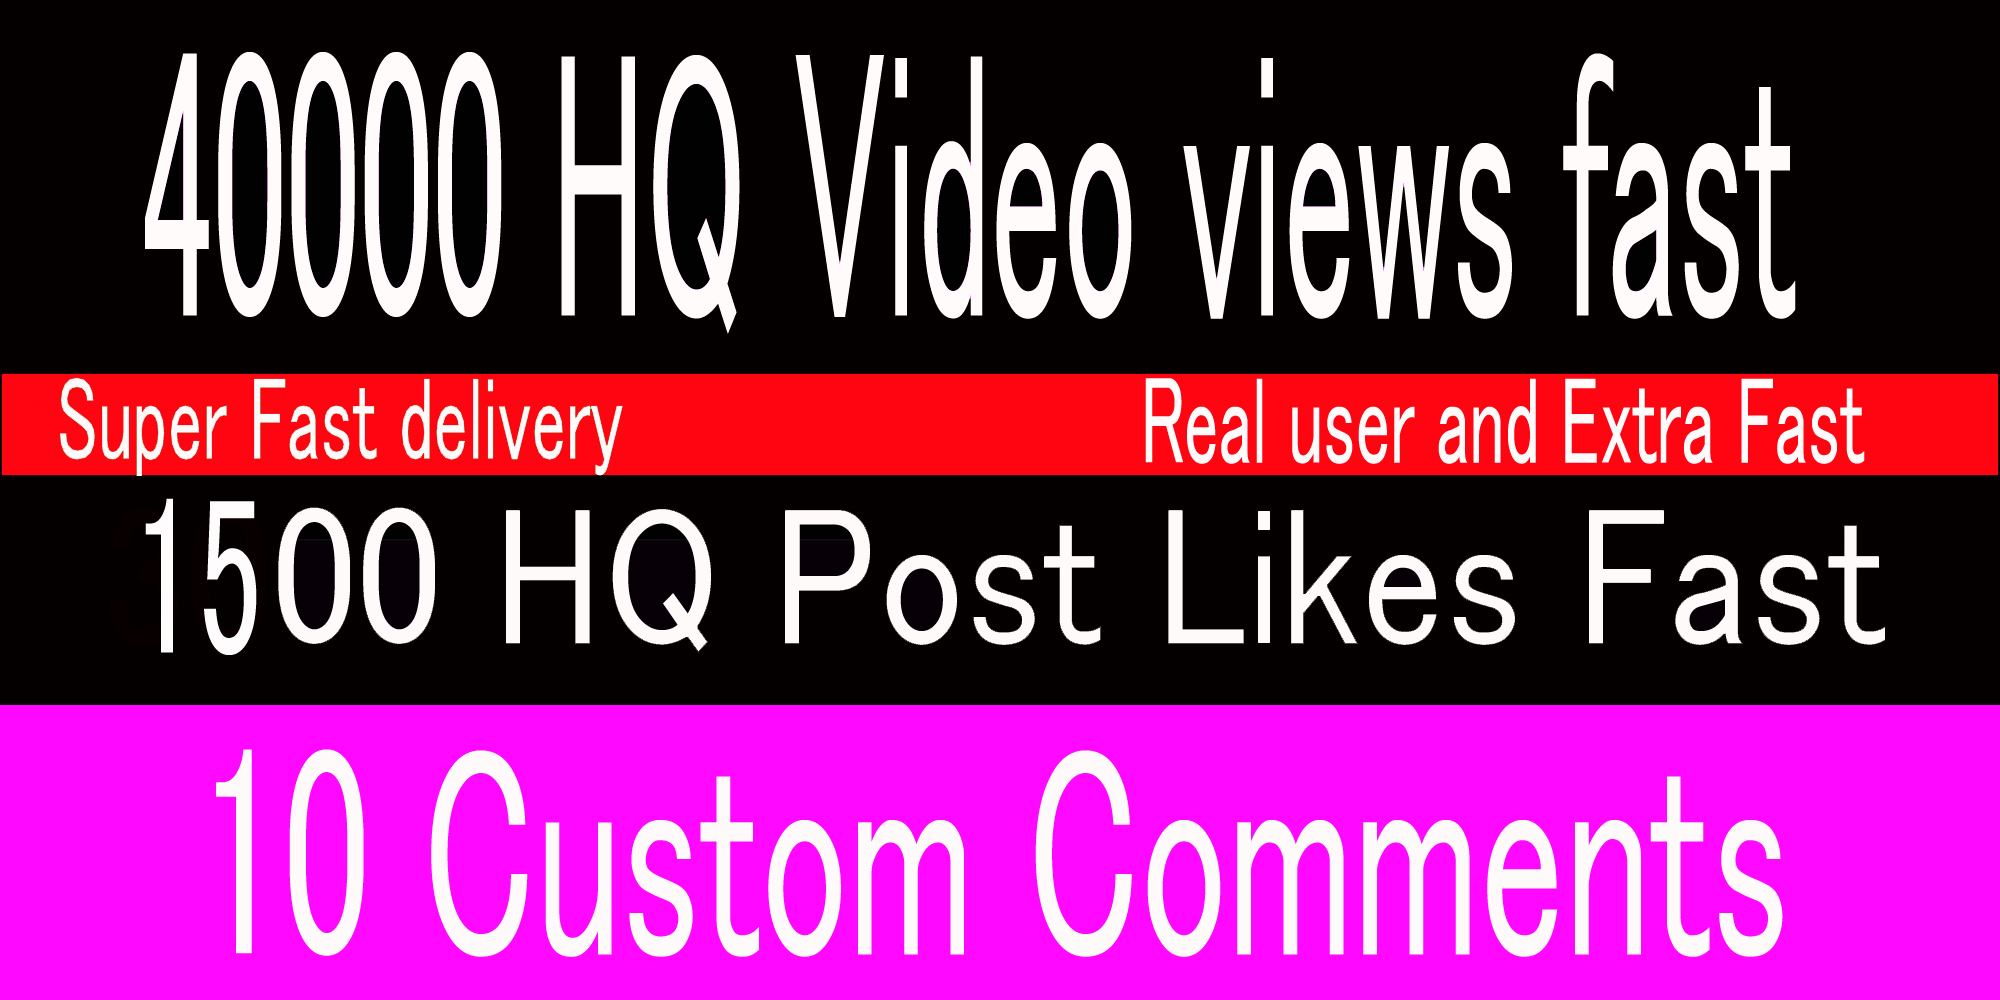 instant 40k video views or 1500+ Likes or 10 comments Social media promotion